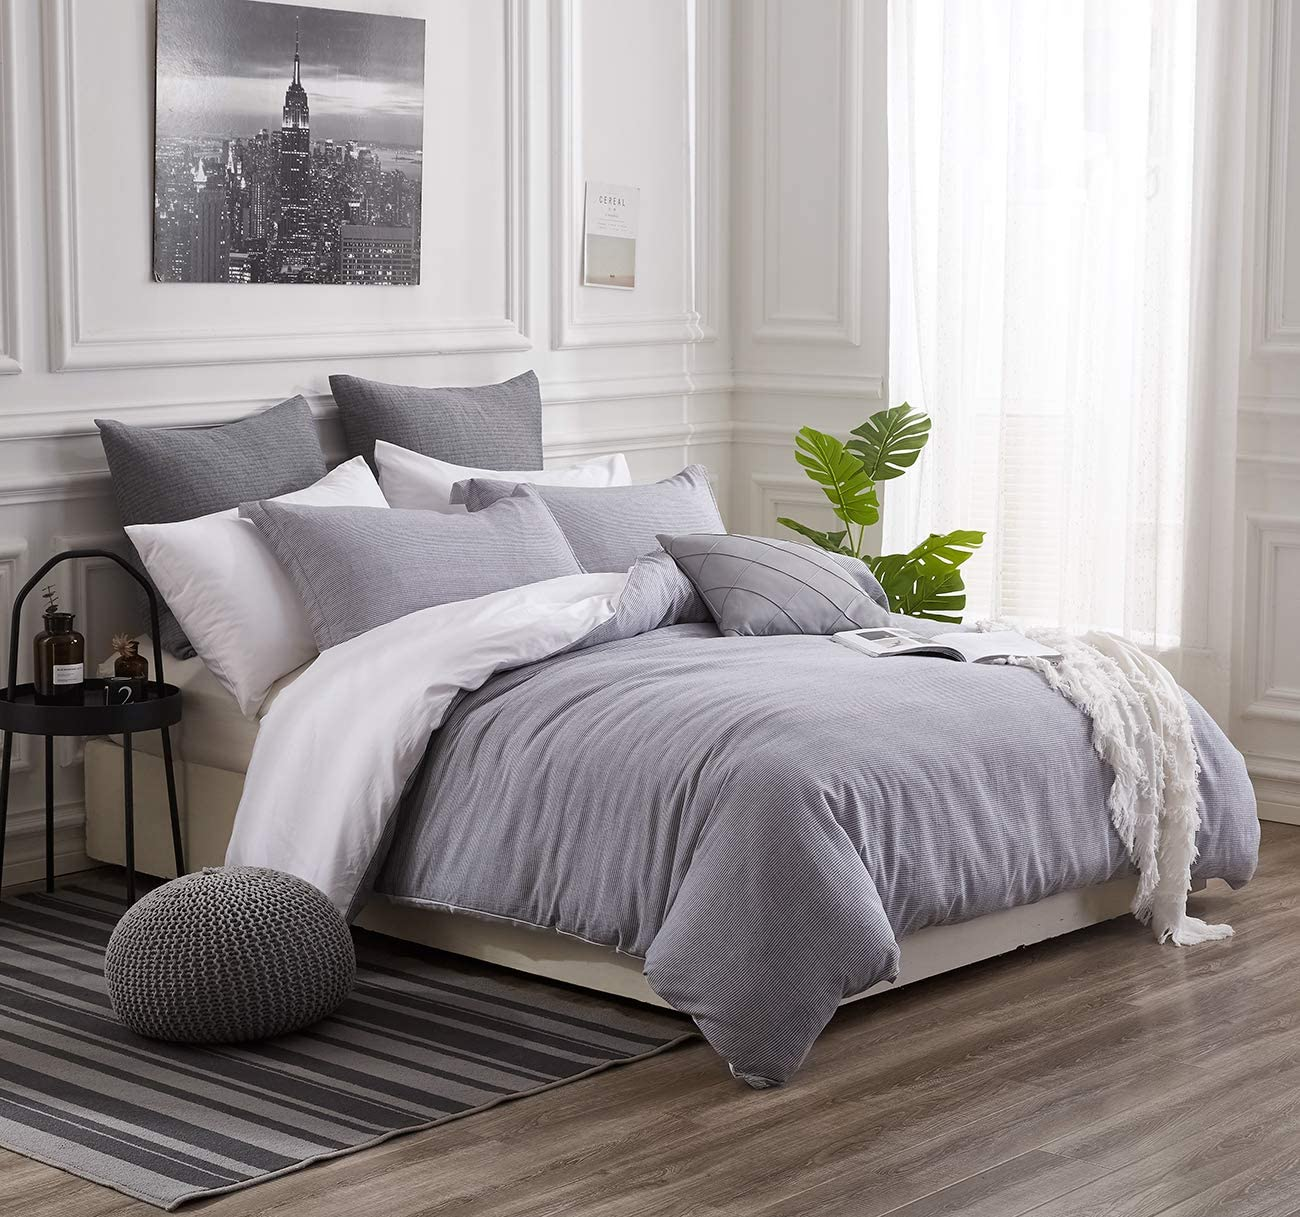 PHF Cotton Duvet Cover Set Yarn Dyed Breathable Soft for Summer Bedding Pinstripe King Size Grey